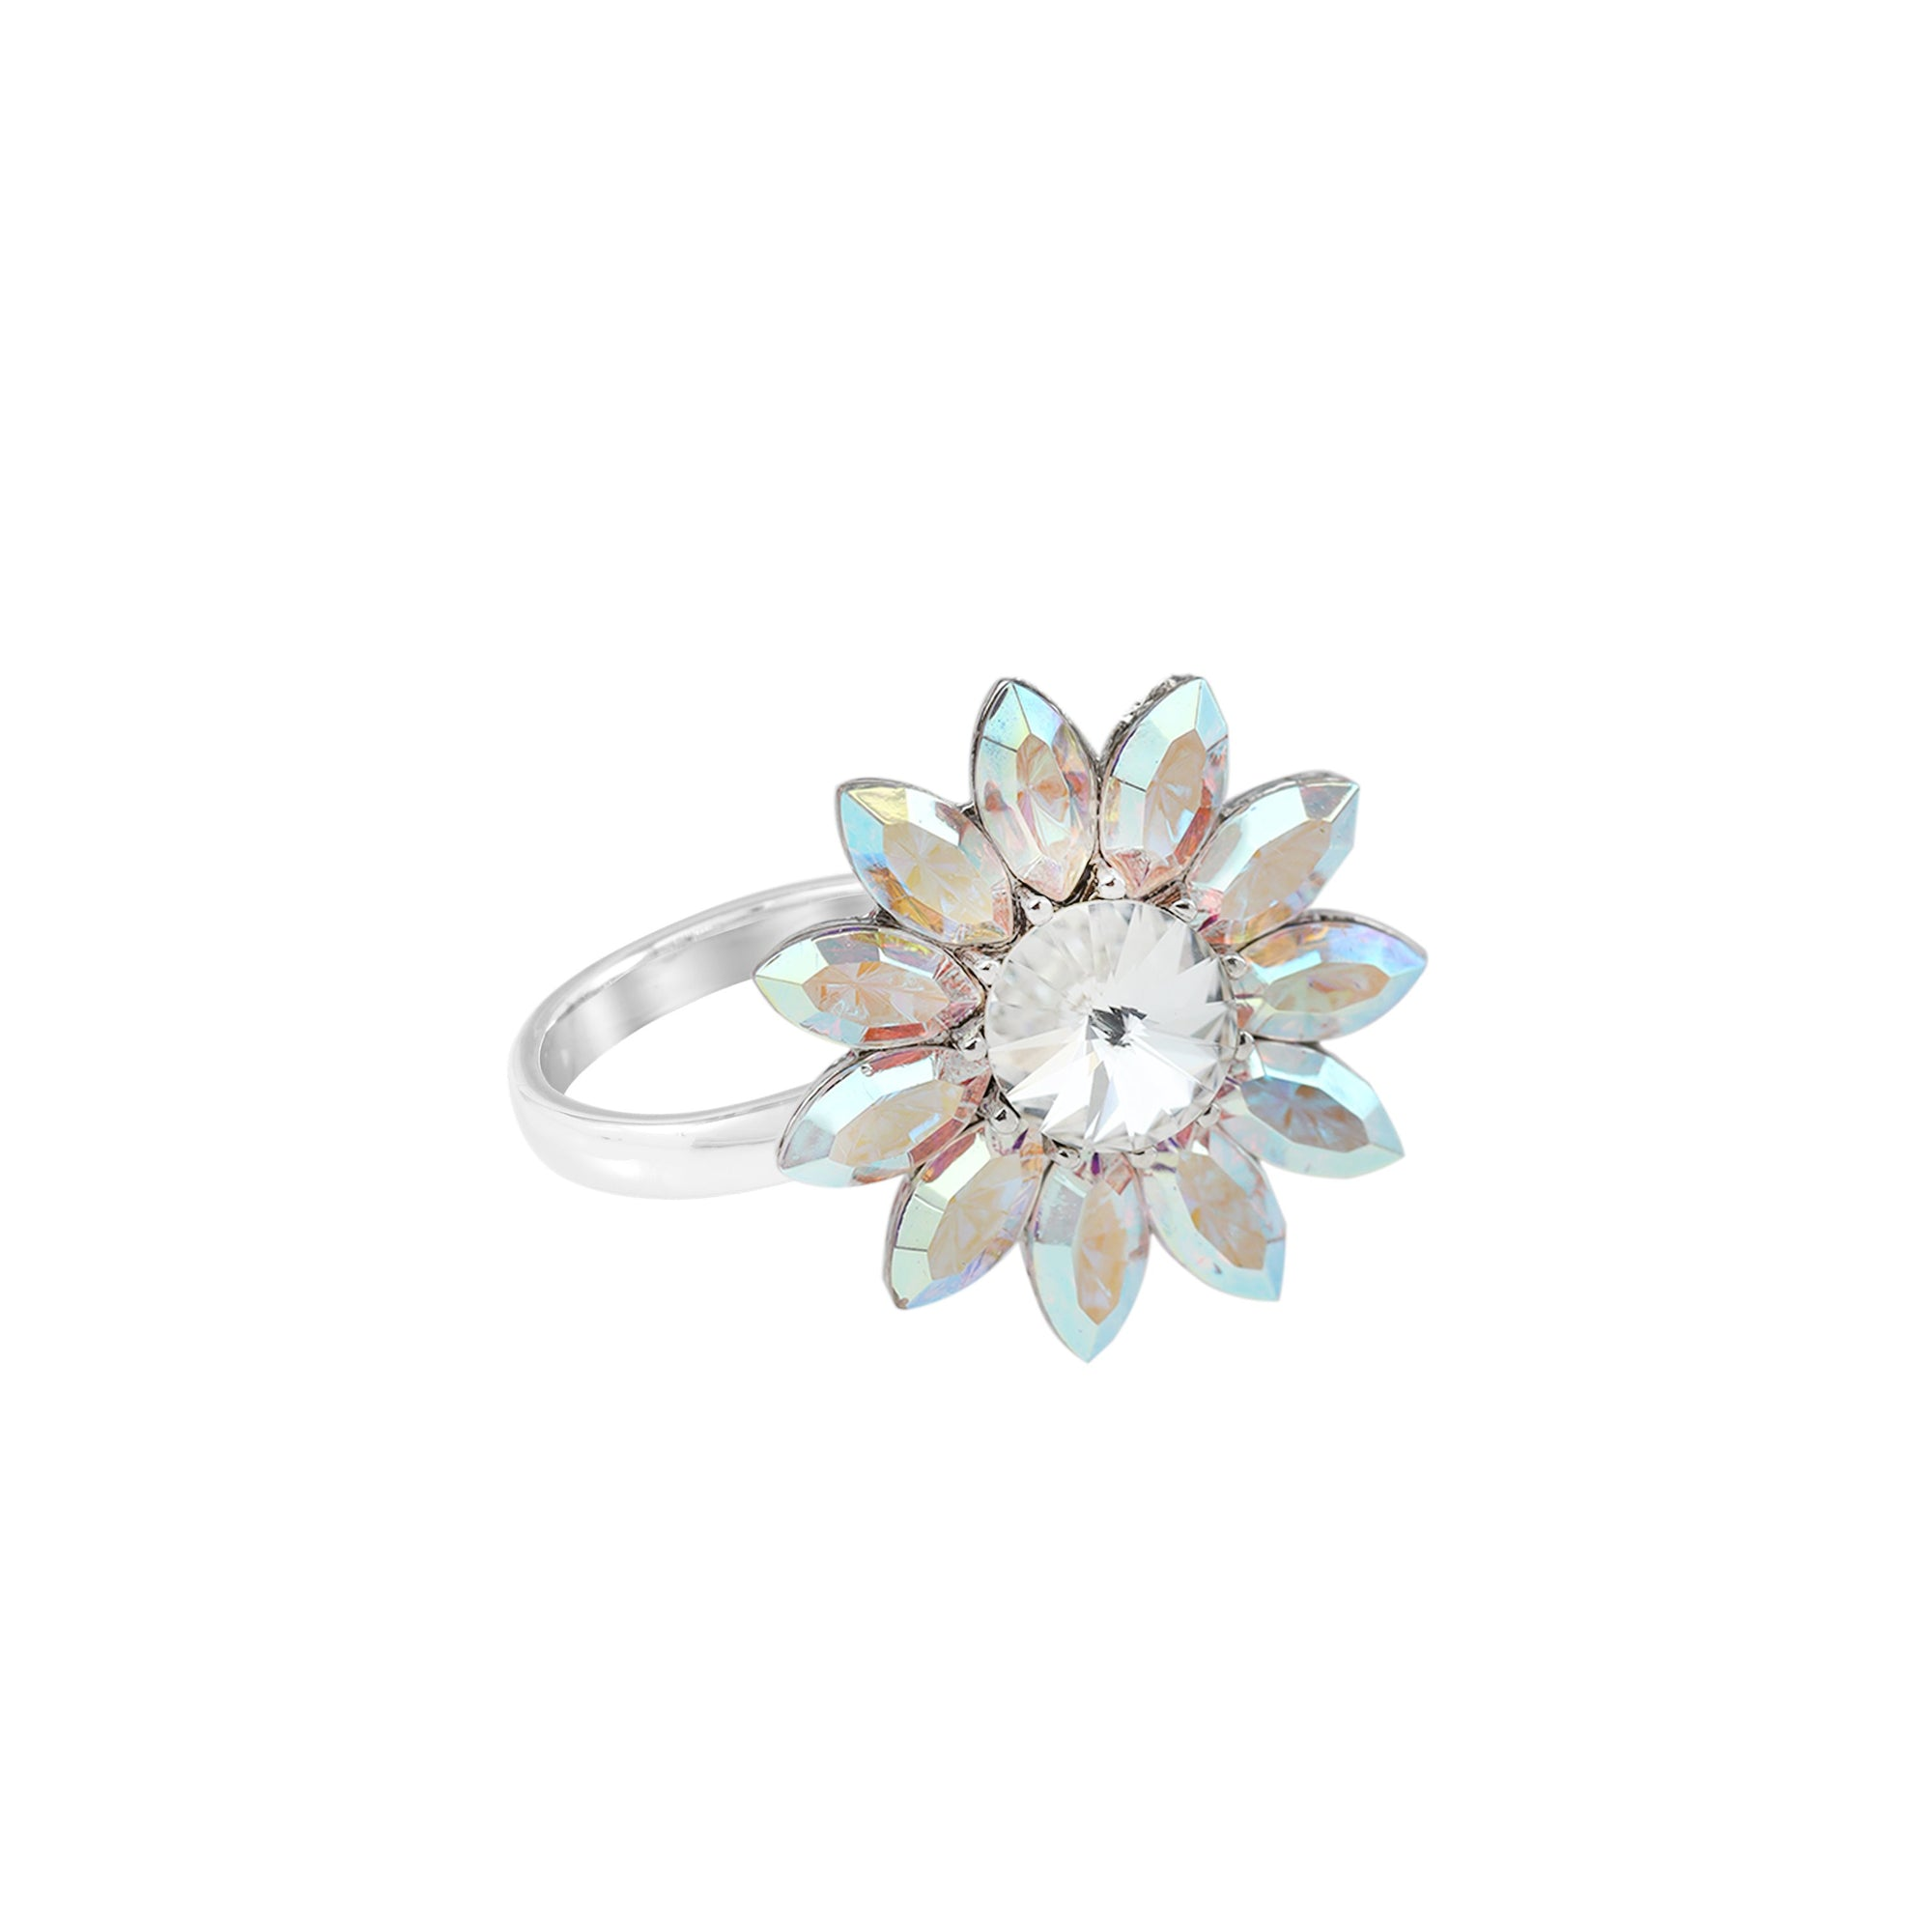 BLOOM NEW BEGINNINGS FLOWER RING AURORA BOREALIS